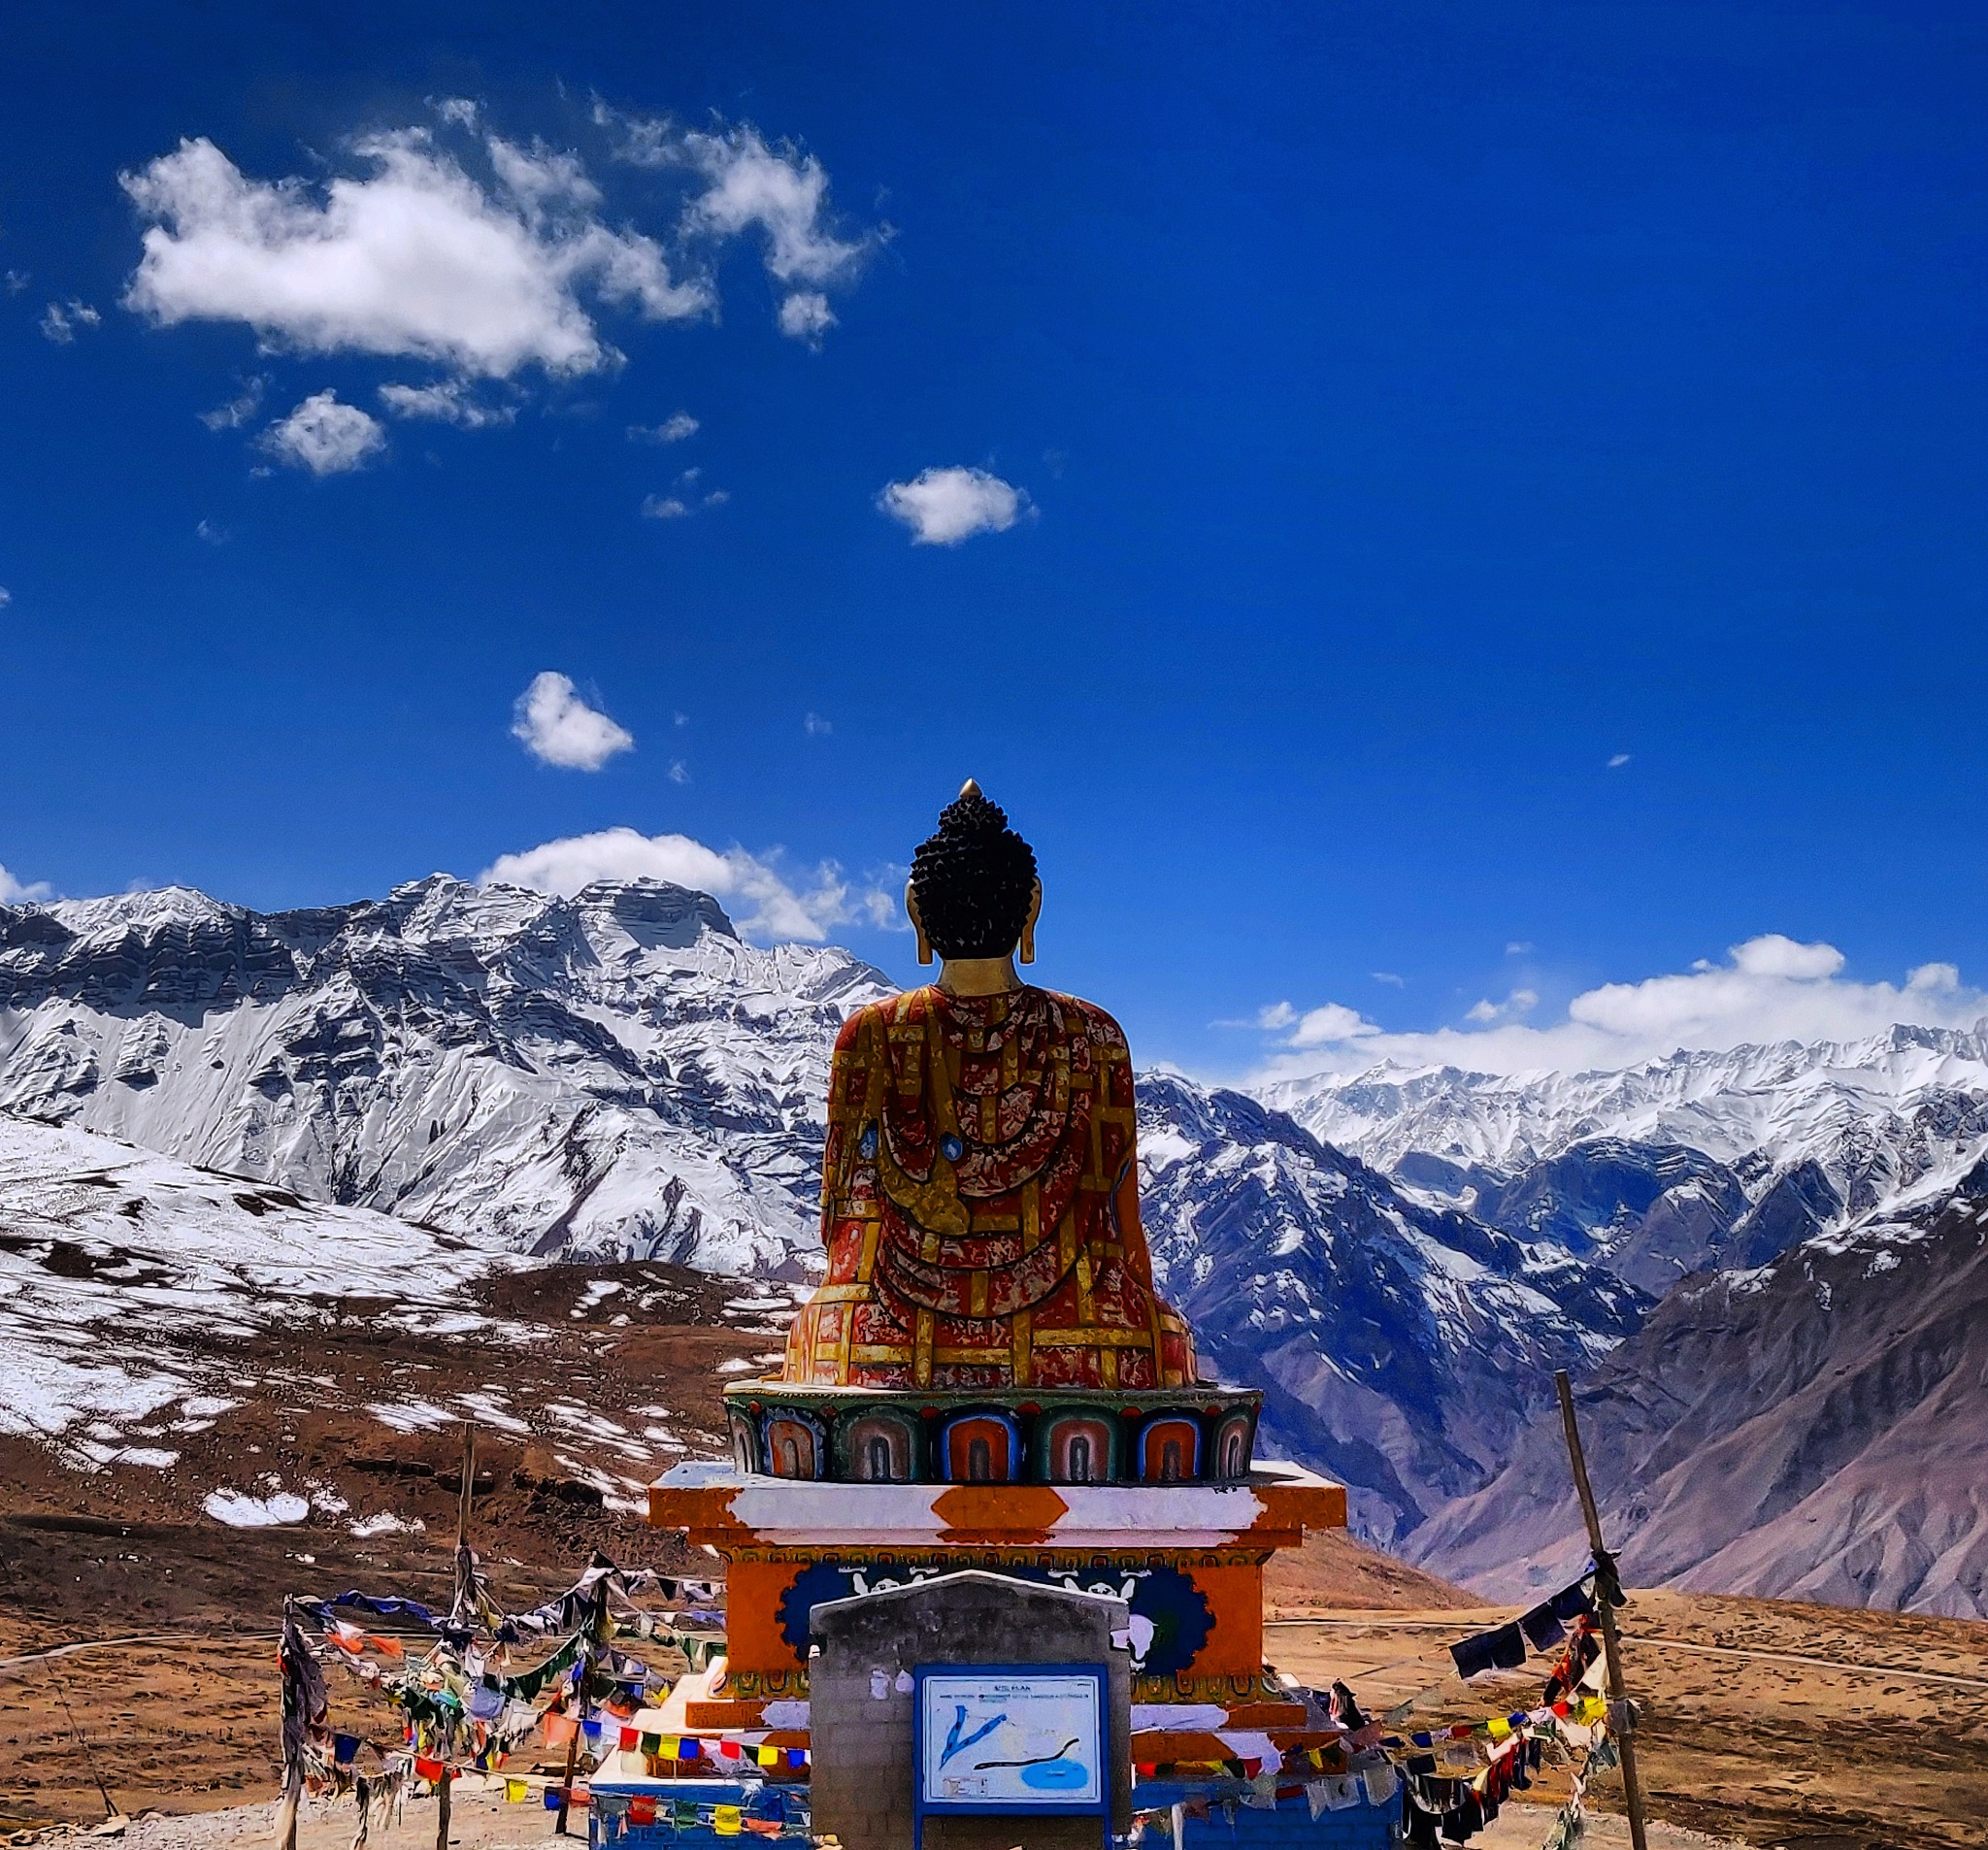 Buddha in Spiti by heisenbergpsy